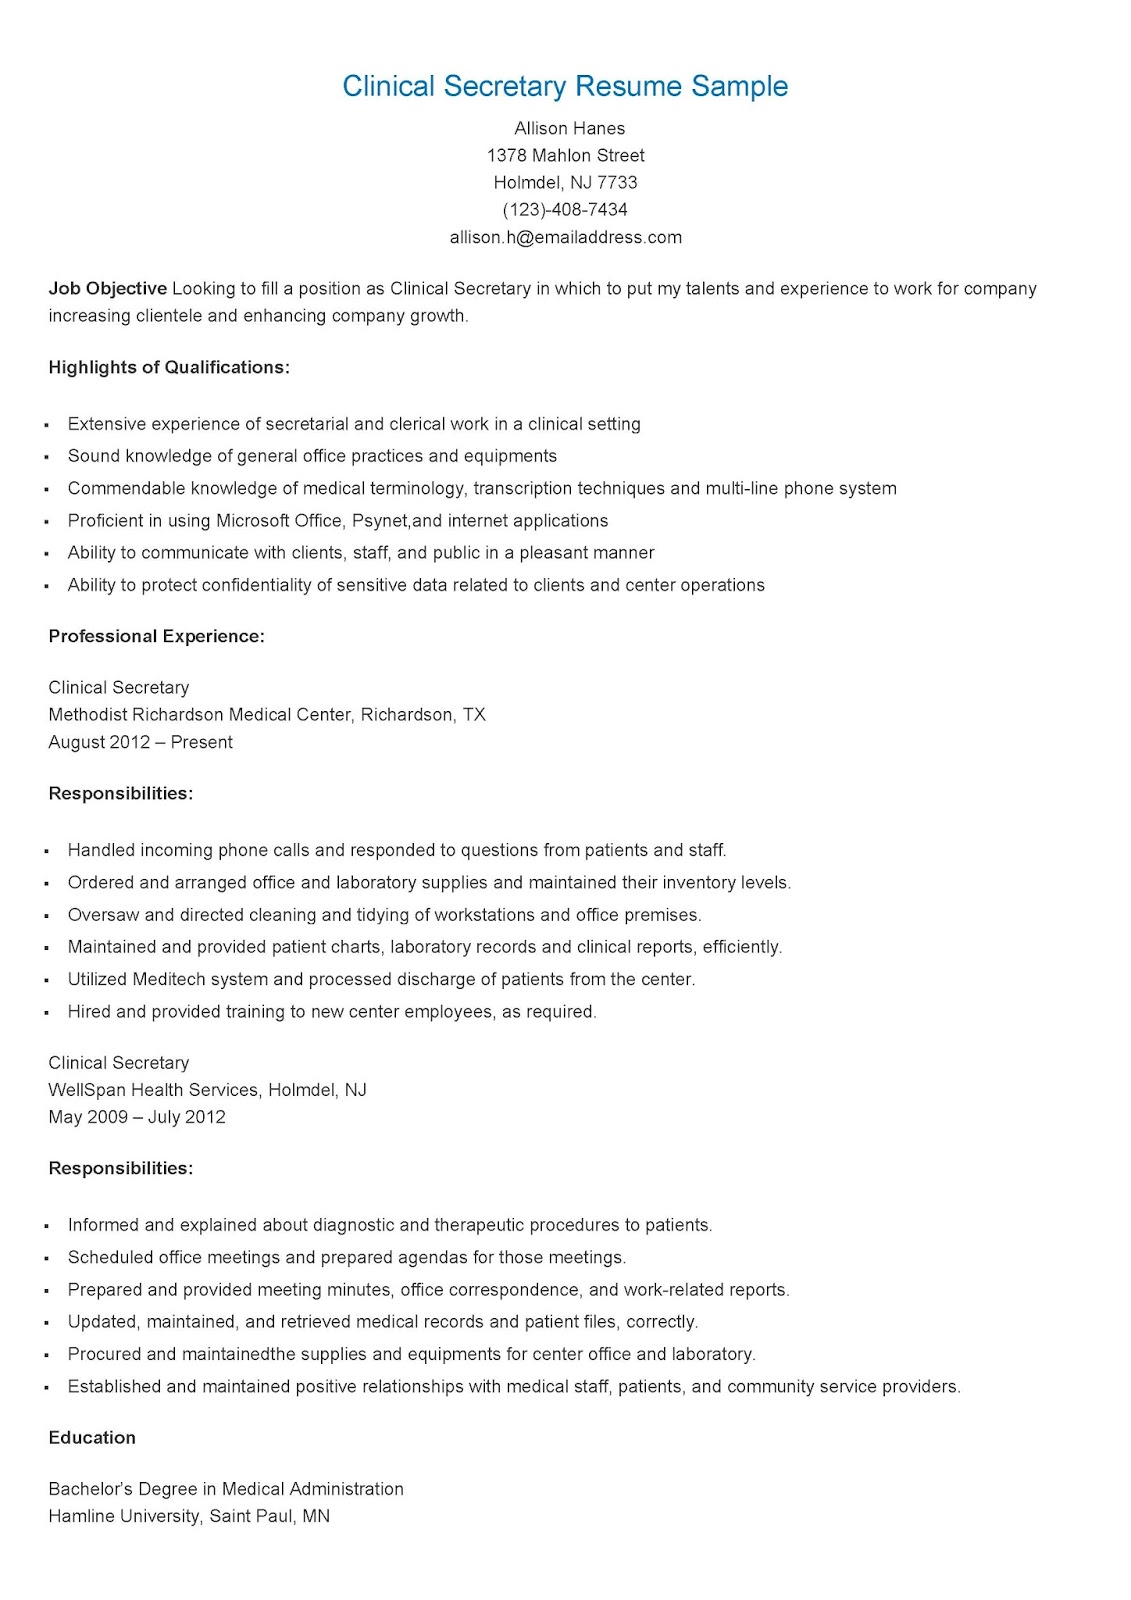 Resume Sample For Secretary Resume Samples Clinical Secretary Resume Sample